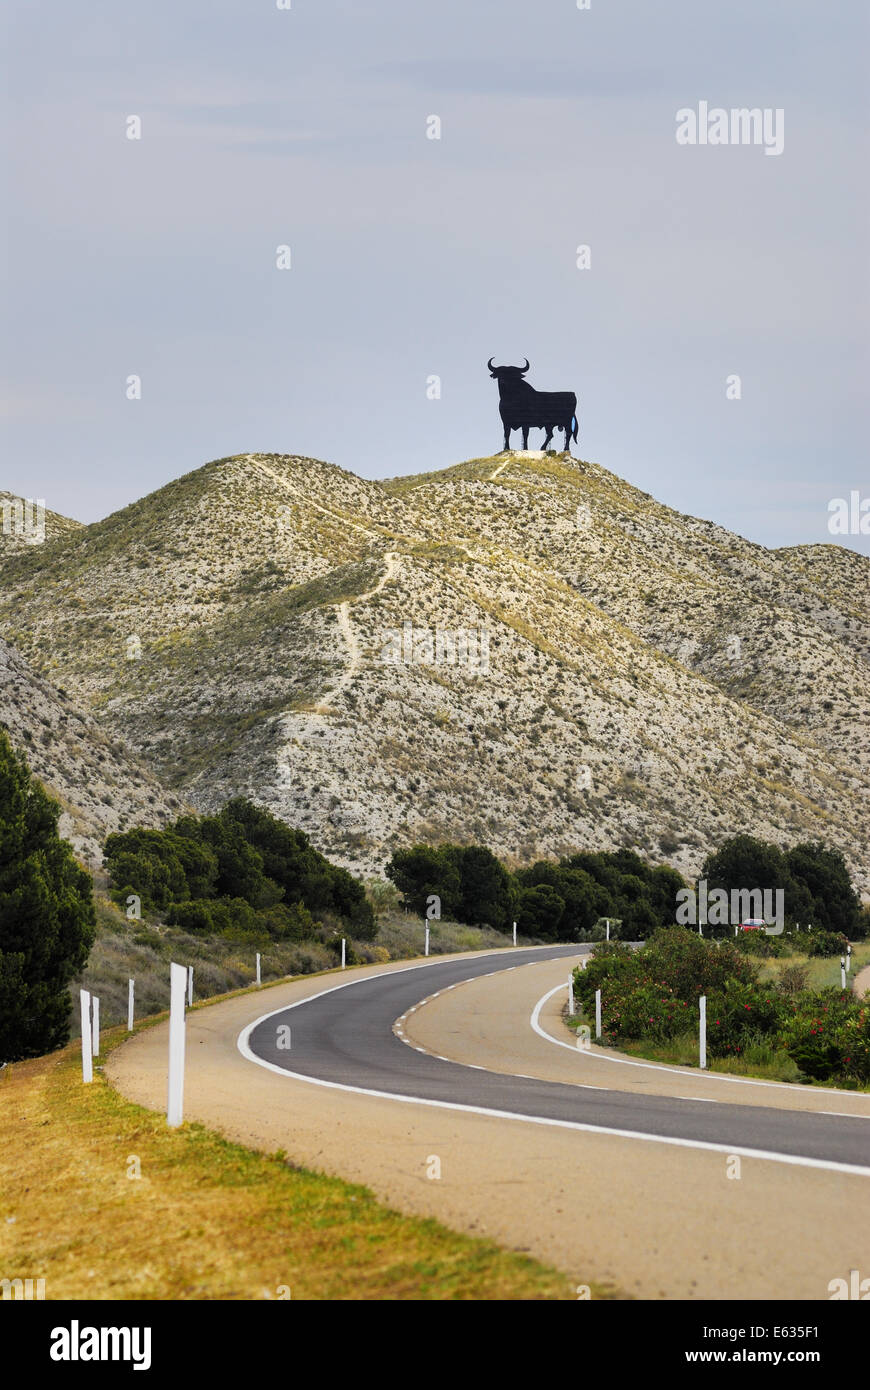 Osborne Bull road sign dominating the spanish roads as an ...